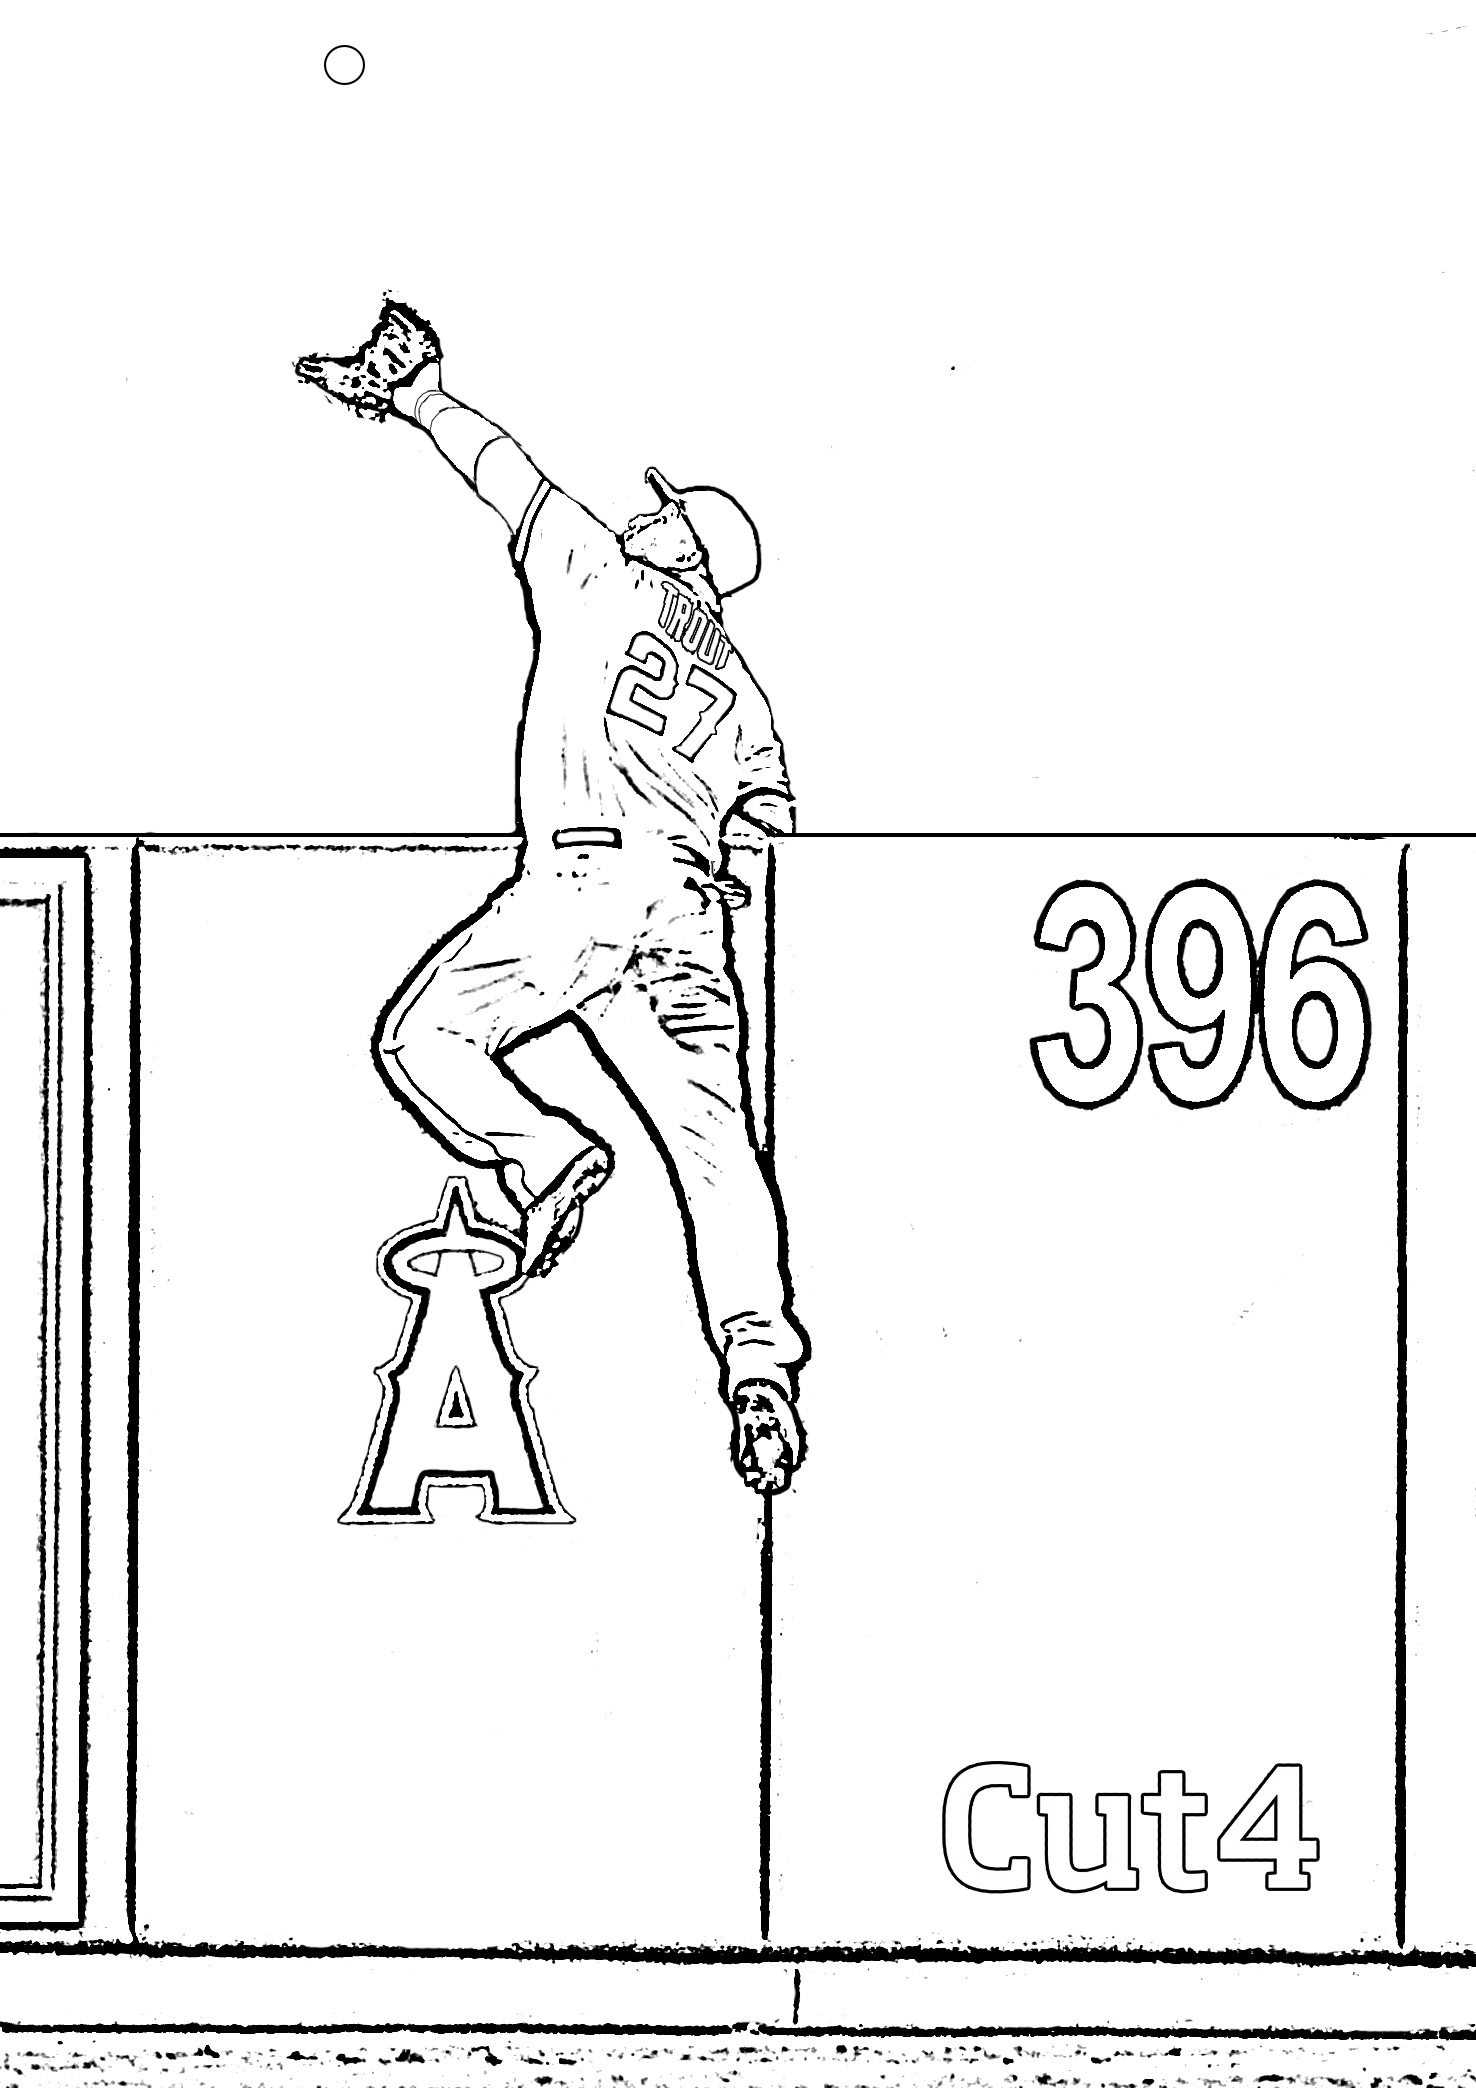 mlb coloring pages mlb logos coloring pages coloring pages to download and pages mlb coloring 1 1